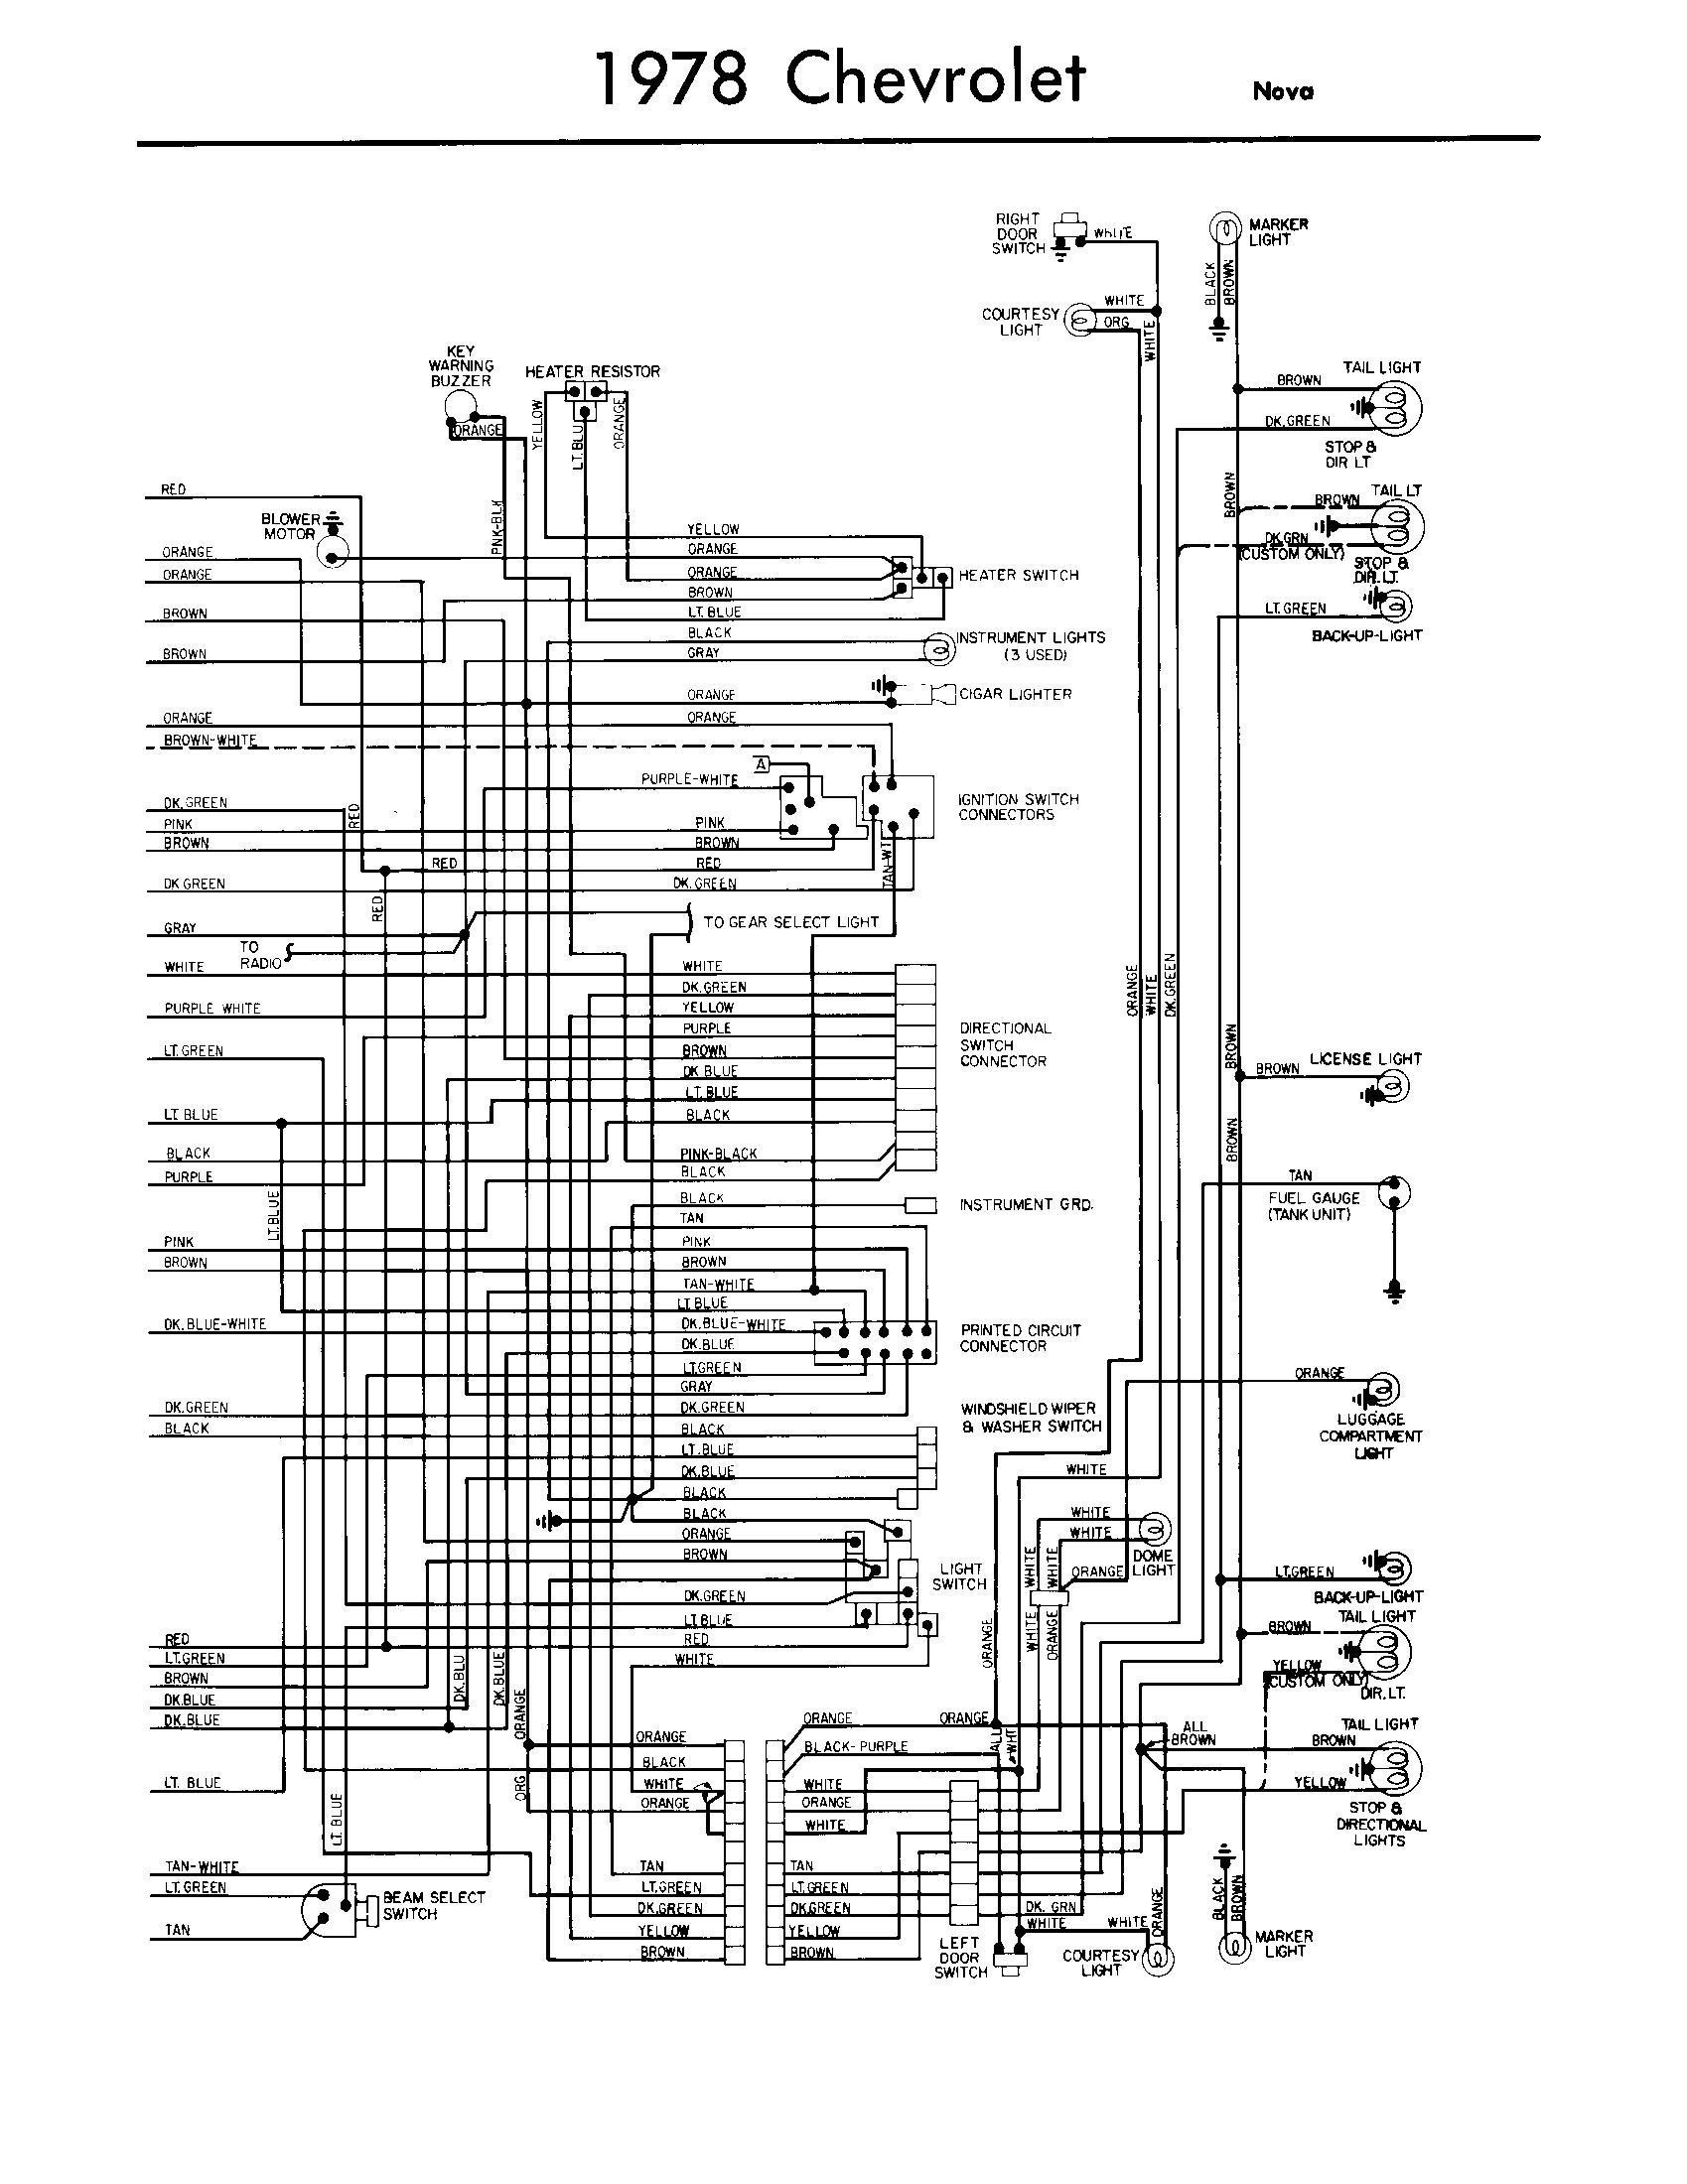 hight resolution of 1977 chevy truck wiring harness wiring diagram post 1977 chevy truck wiring harness 1977 chevy pickup